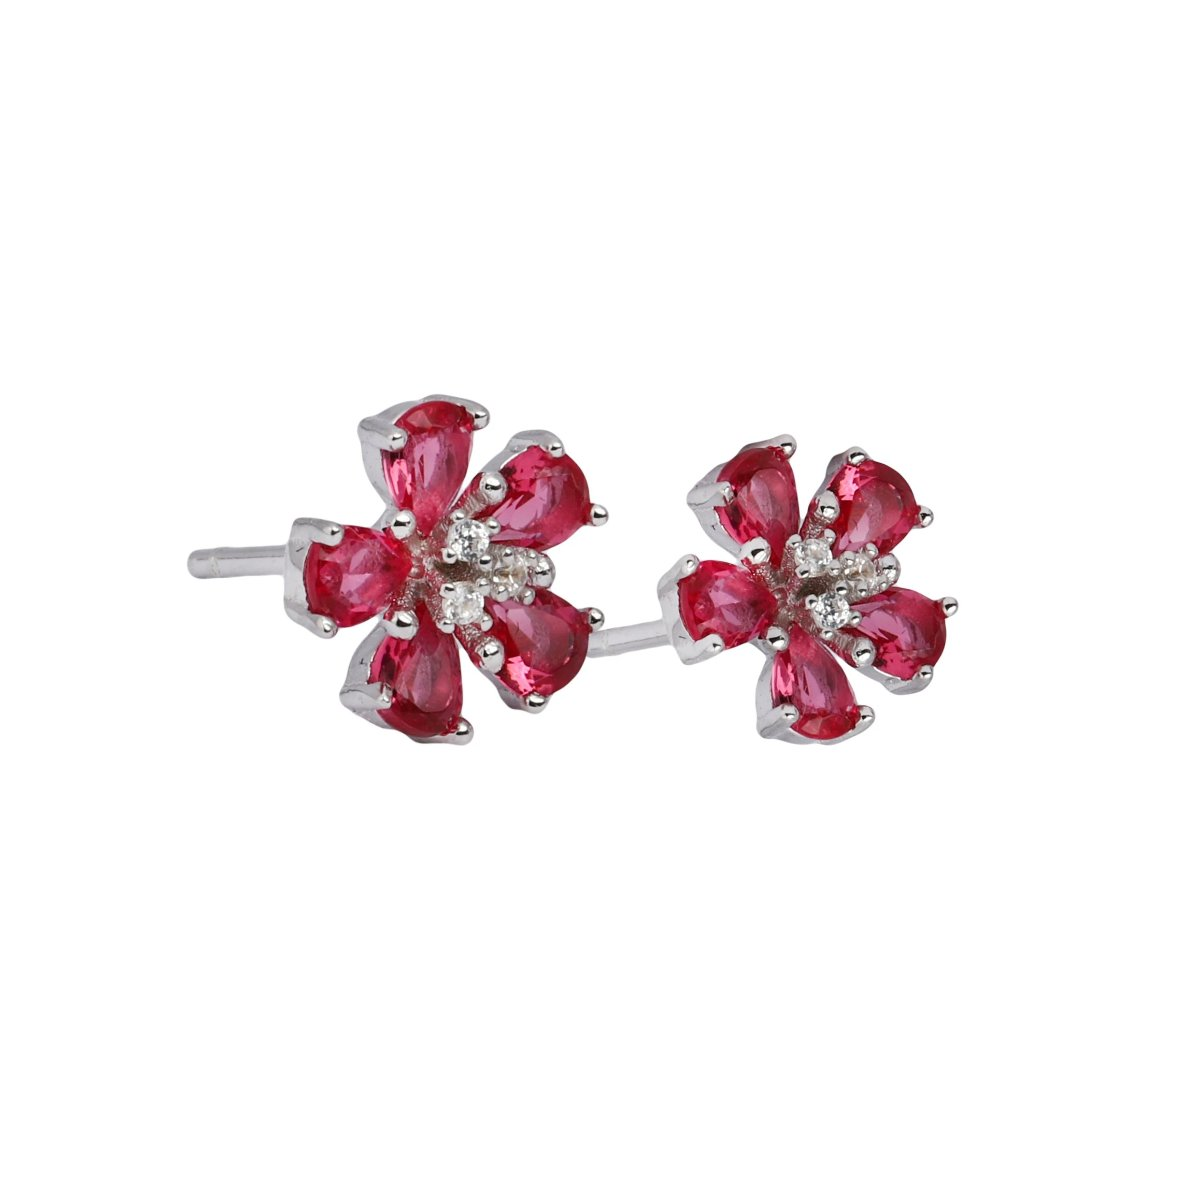 Earring E1002-R - 925 Sterling Silver - Rose Flower